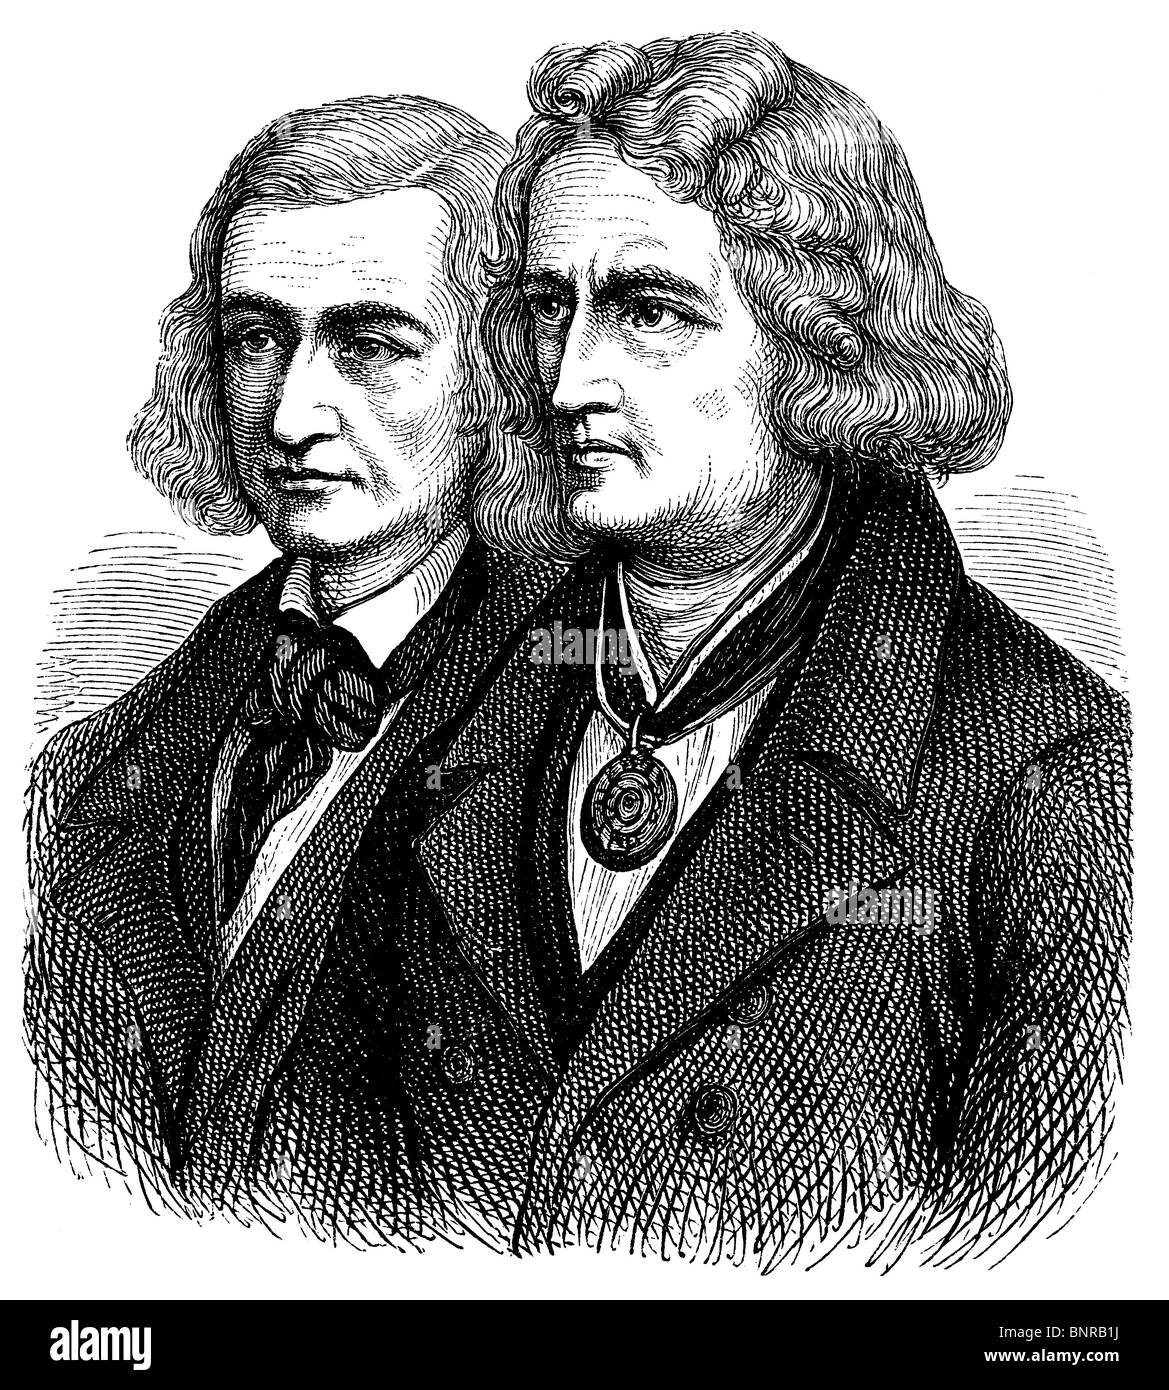 Brothers Grimm, Jakob Grimm, Wilhelm Grimm, collectors of fairy tales - Stock Image